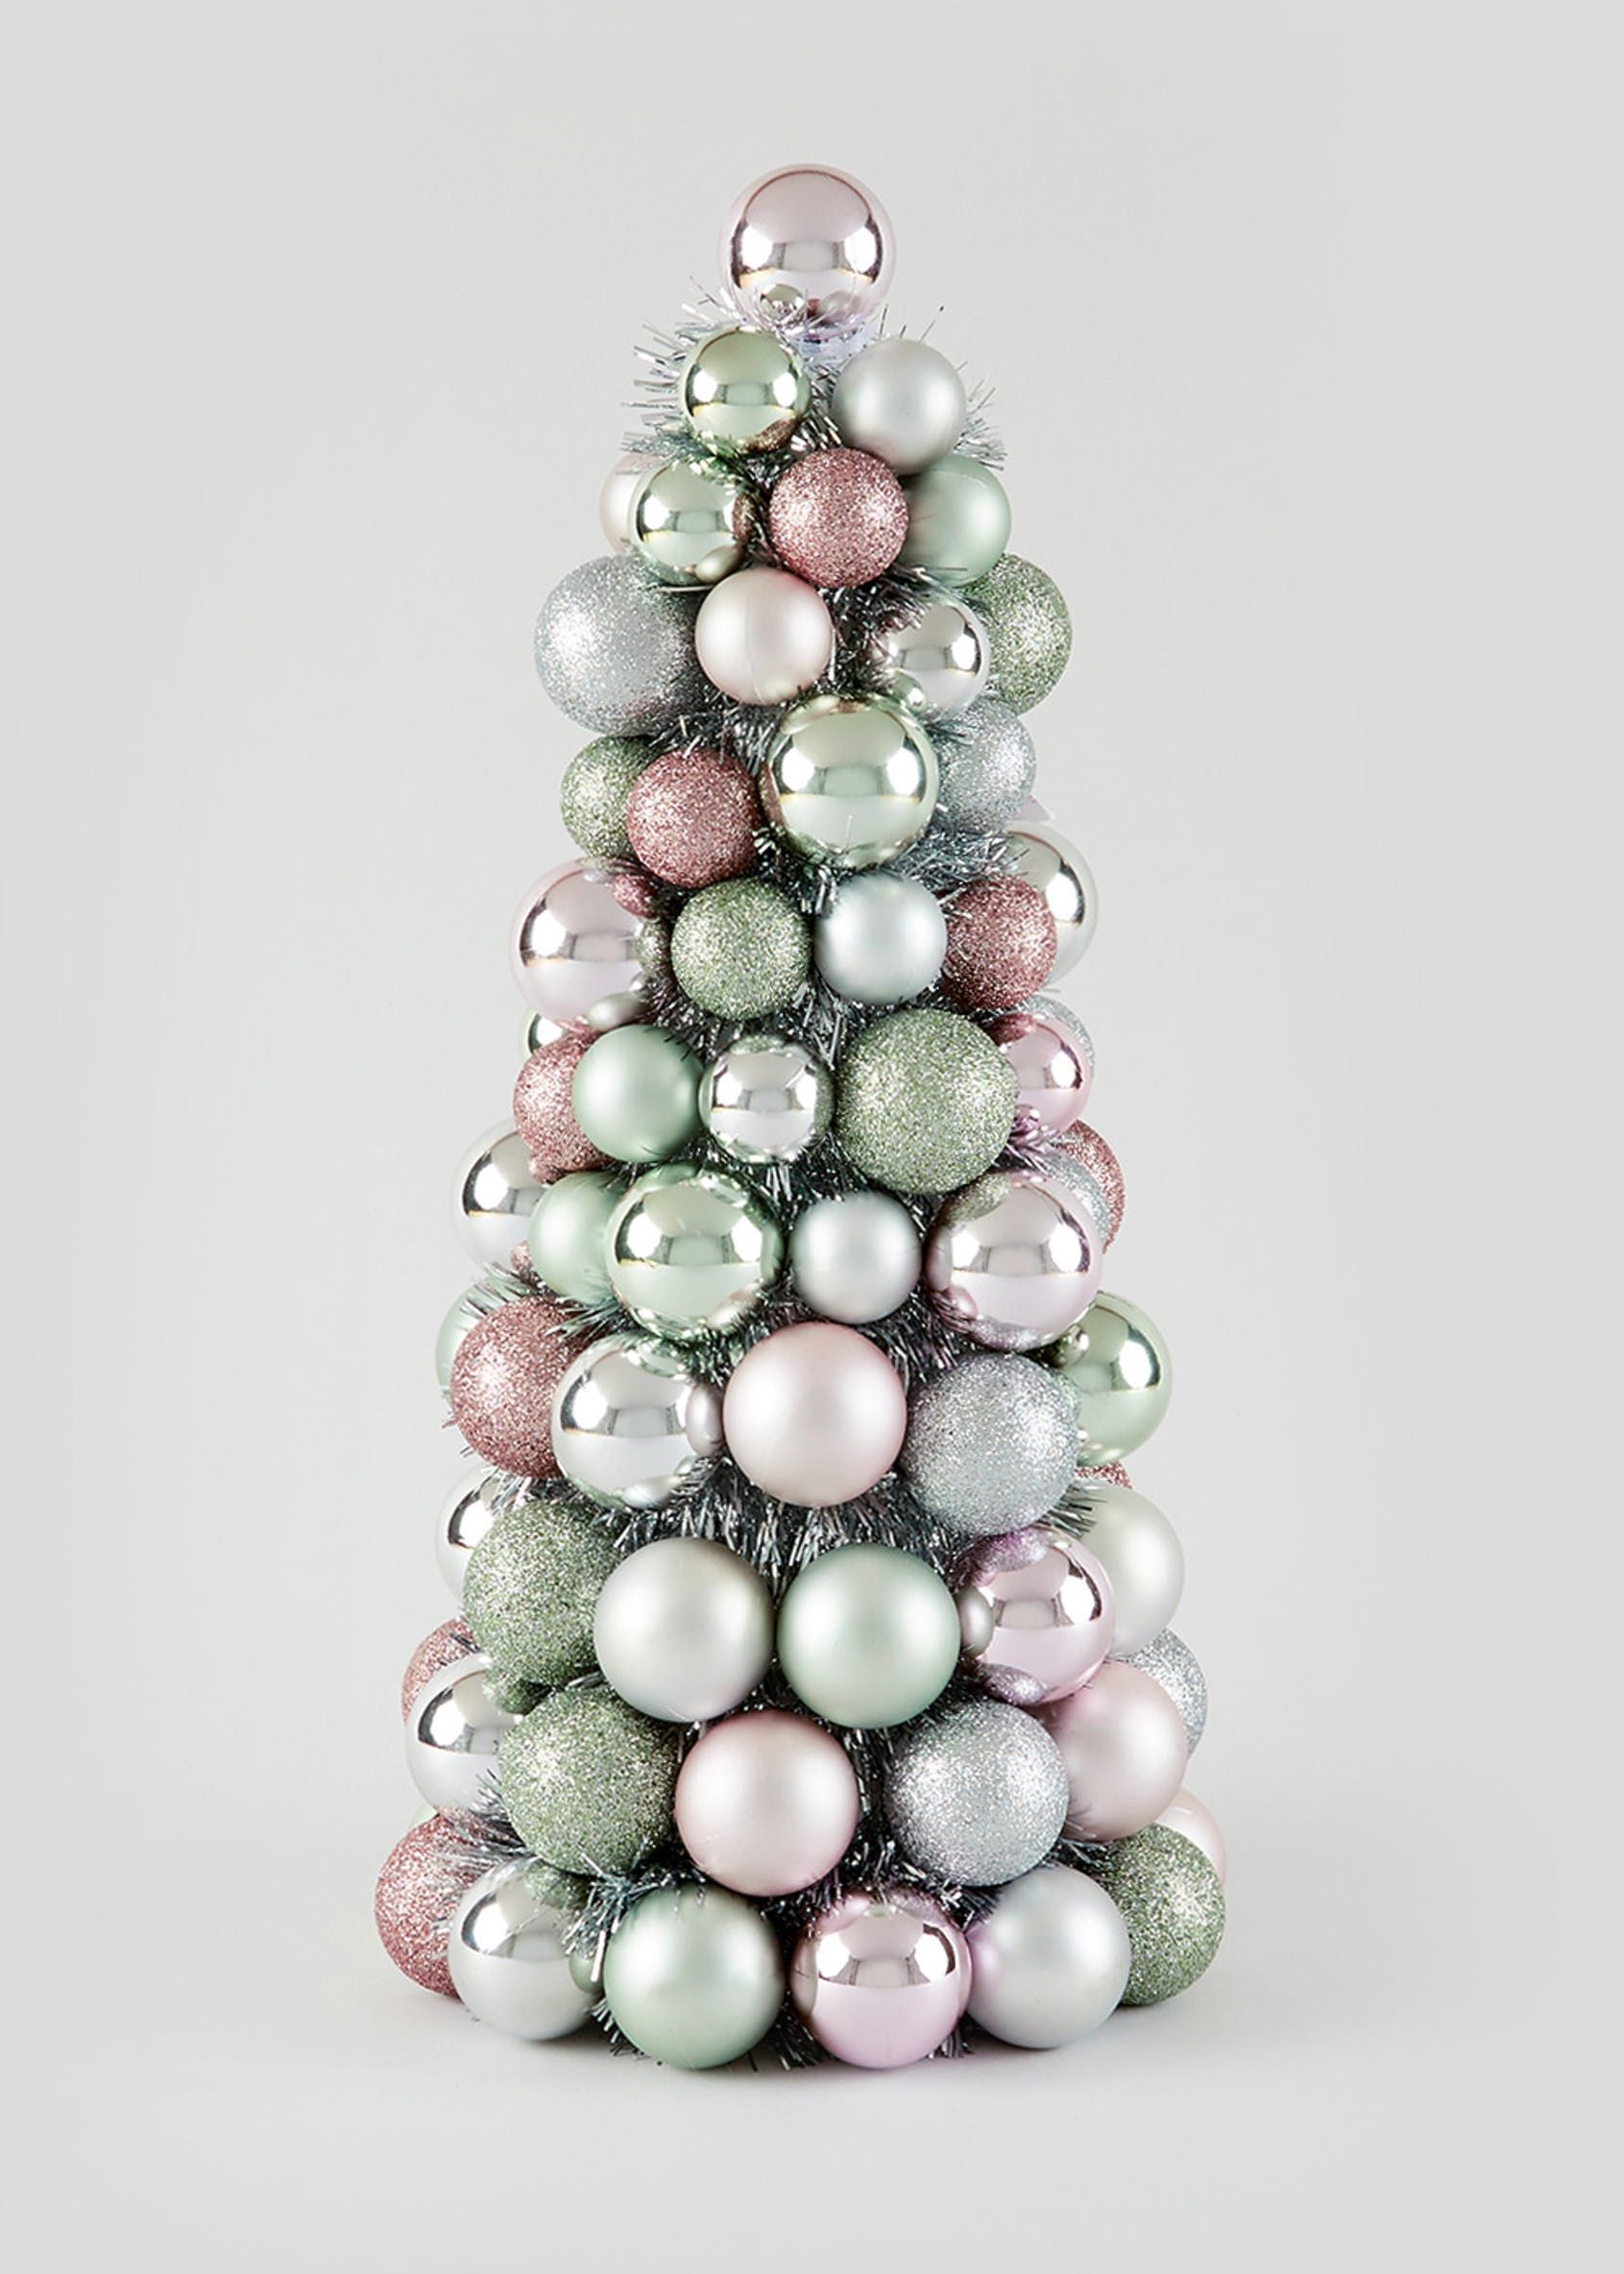 Christmas Bauble Tree 40cm Multi Homemade Christmas Table Decorations Christmas Tree Baubles Christmas Decorations